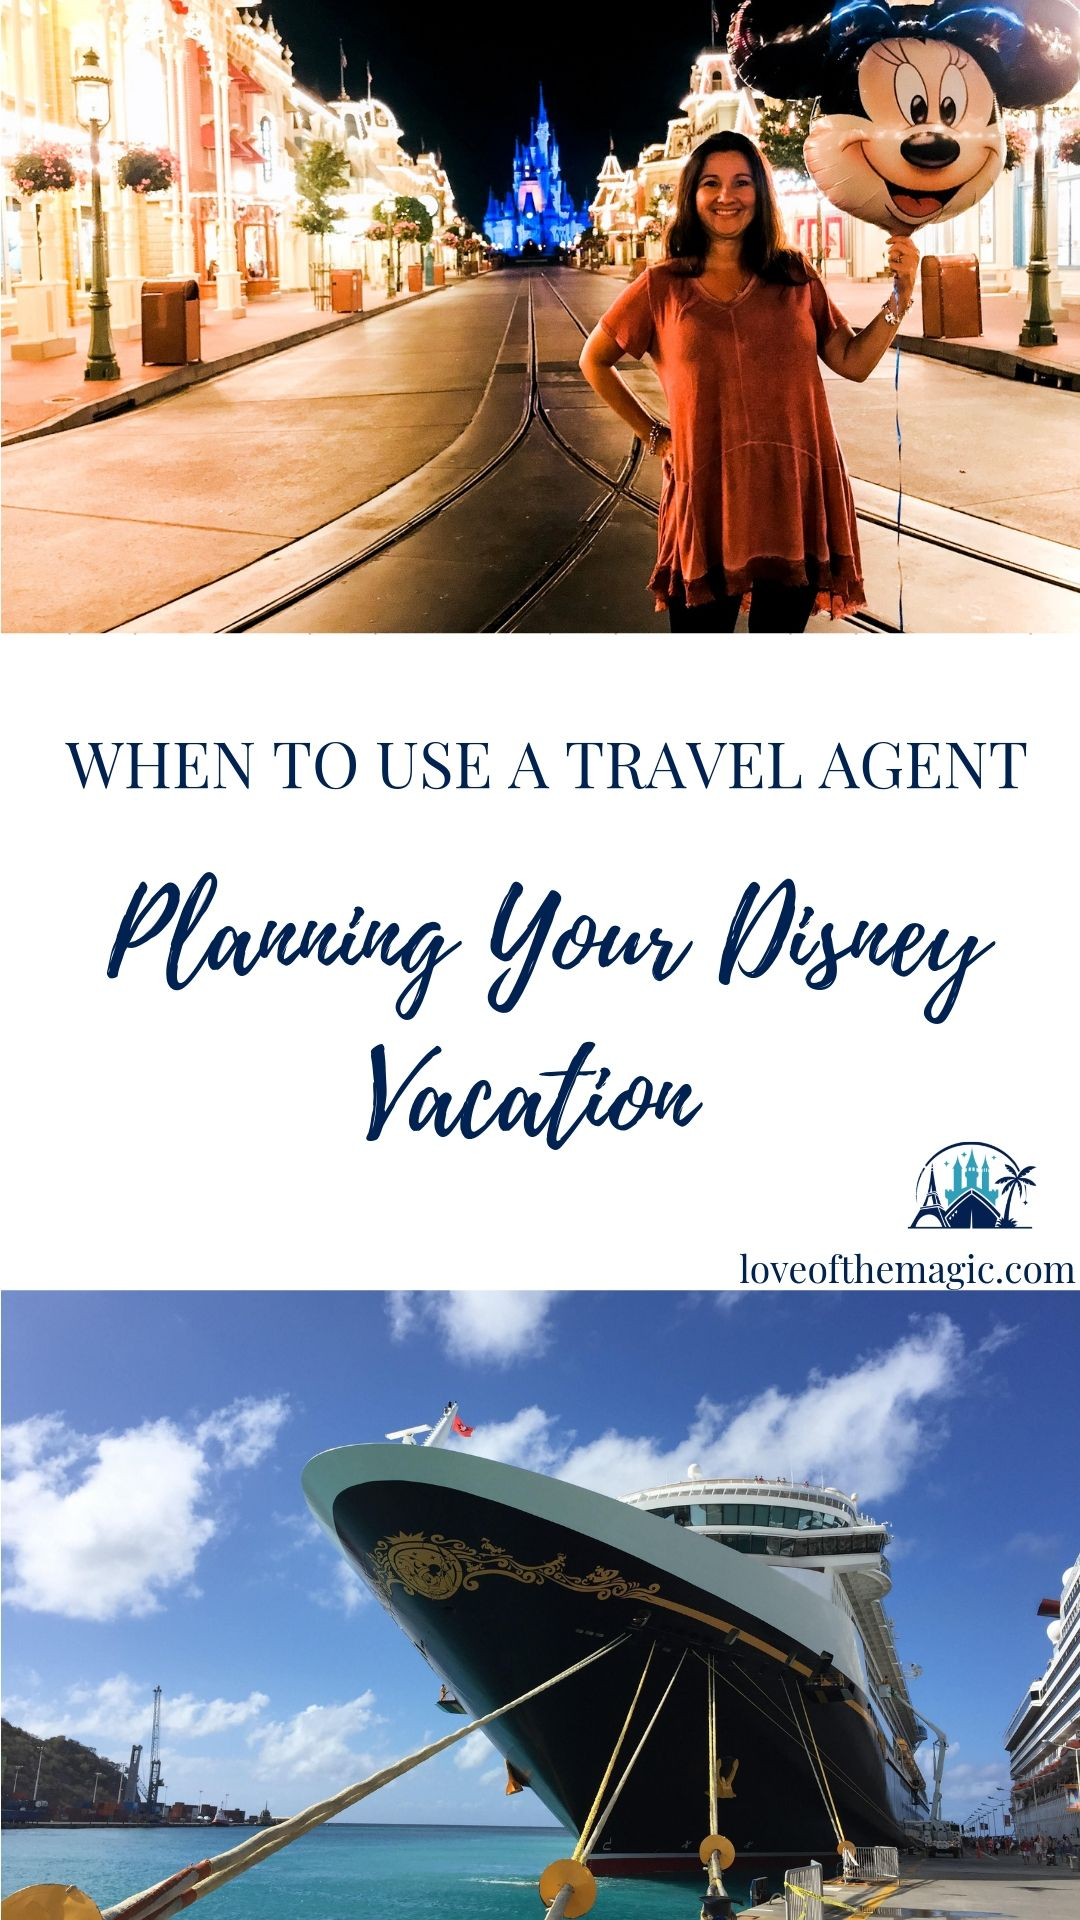 When To Use a Travel Agent Planning Your Disney Vacation